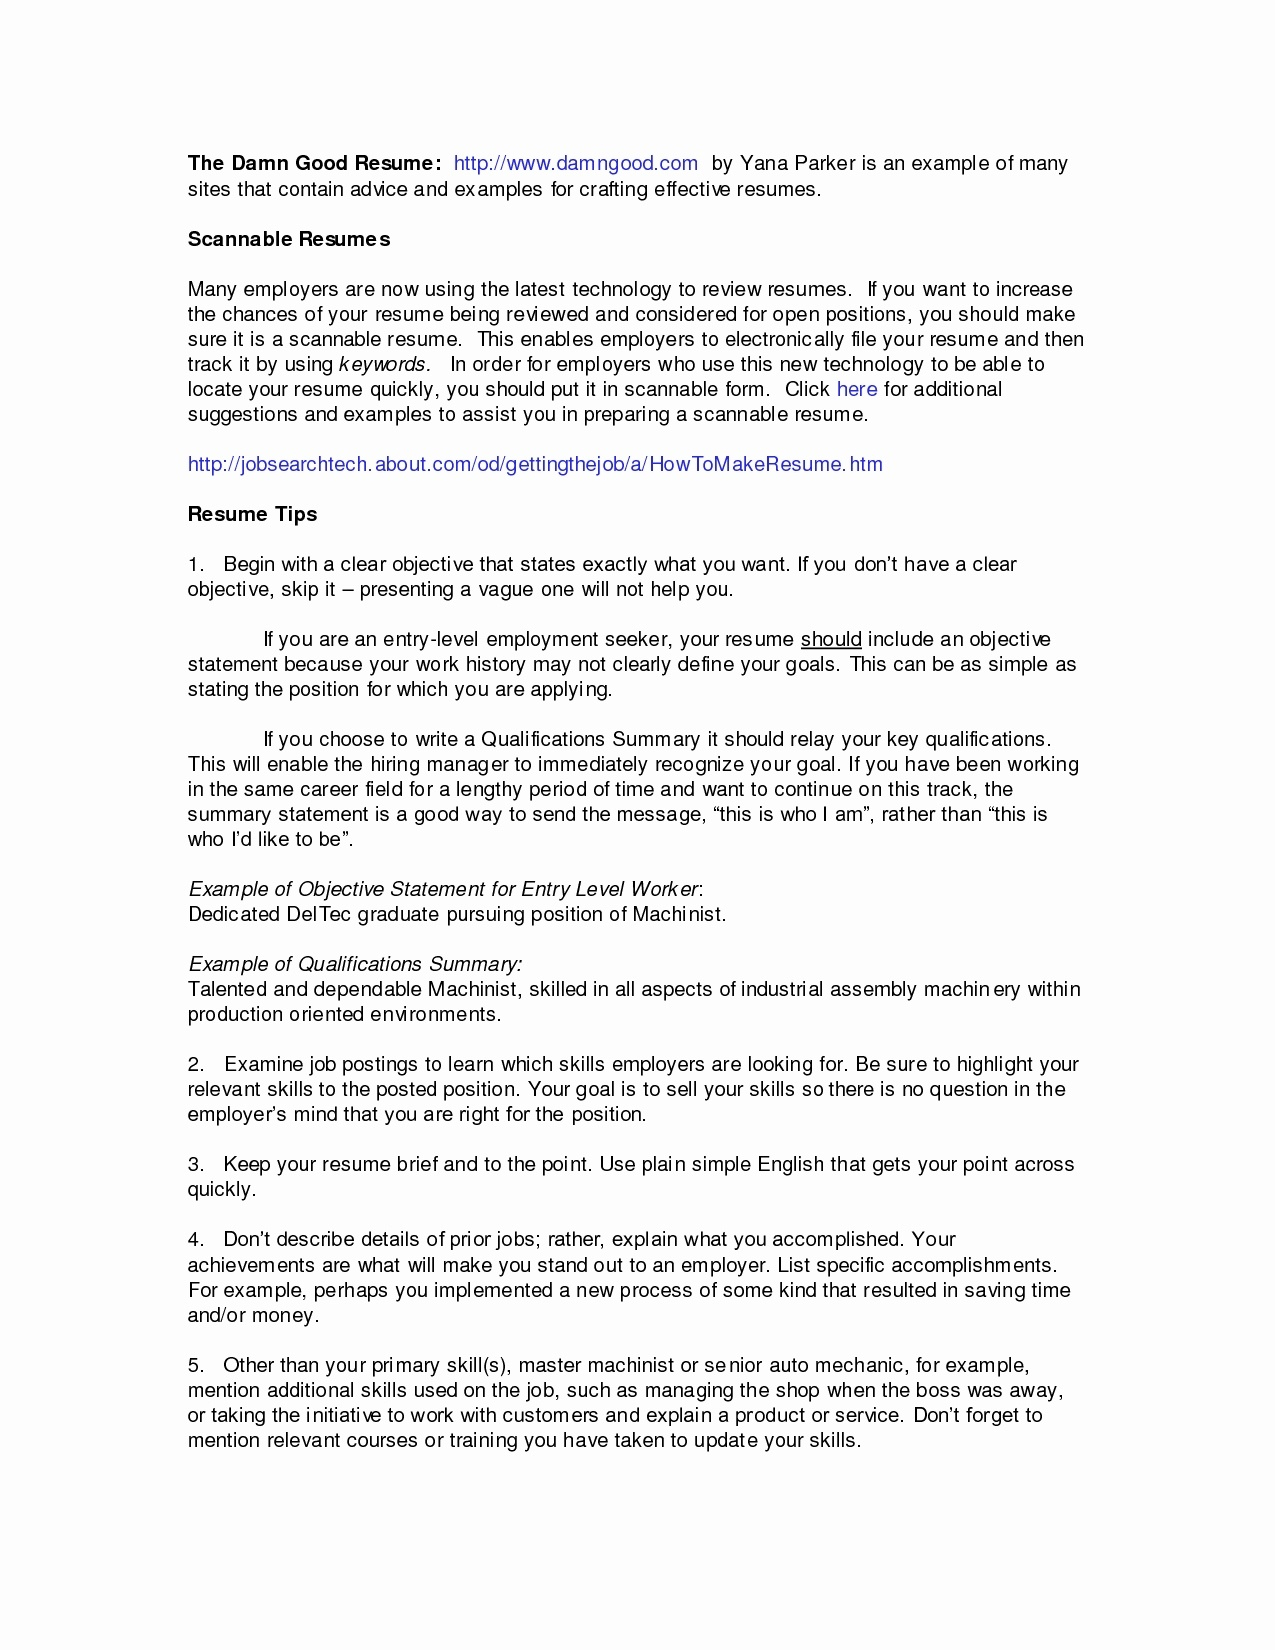 Senior Executive Resume Examples - Interest Section Resume Examples Fresh Sample Hobbies and